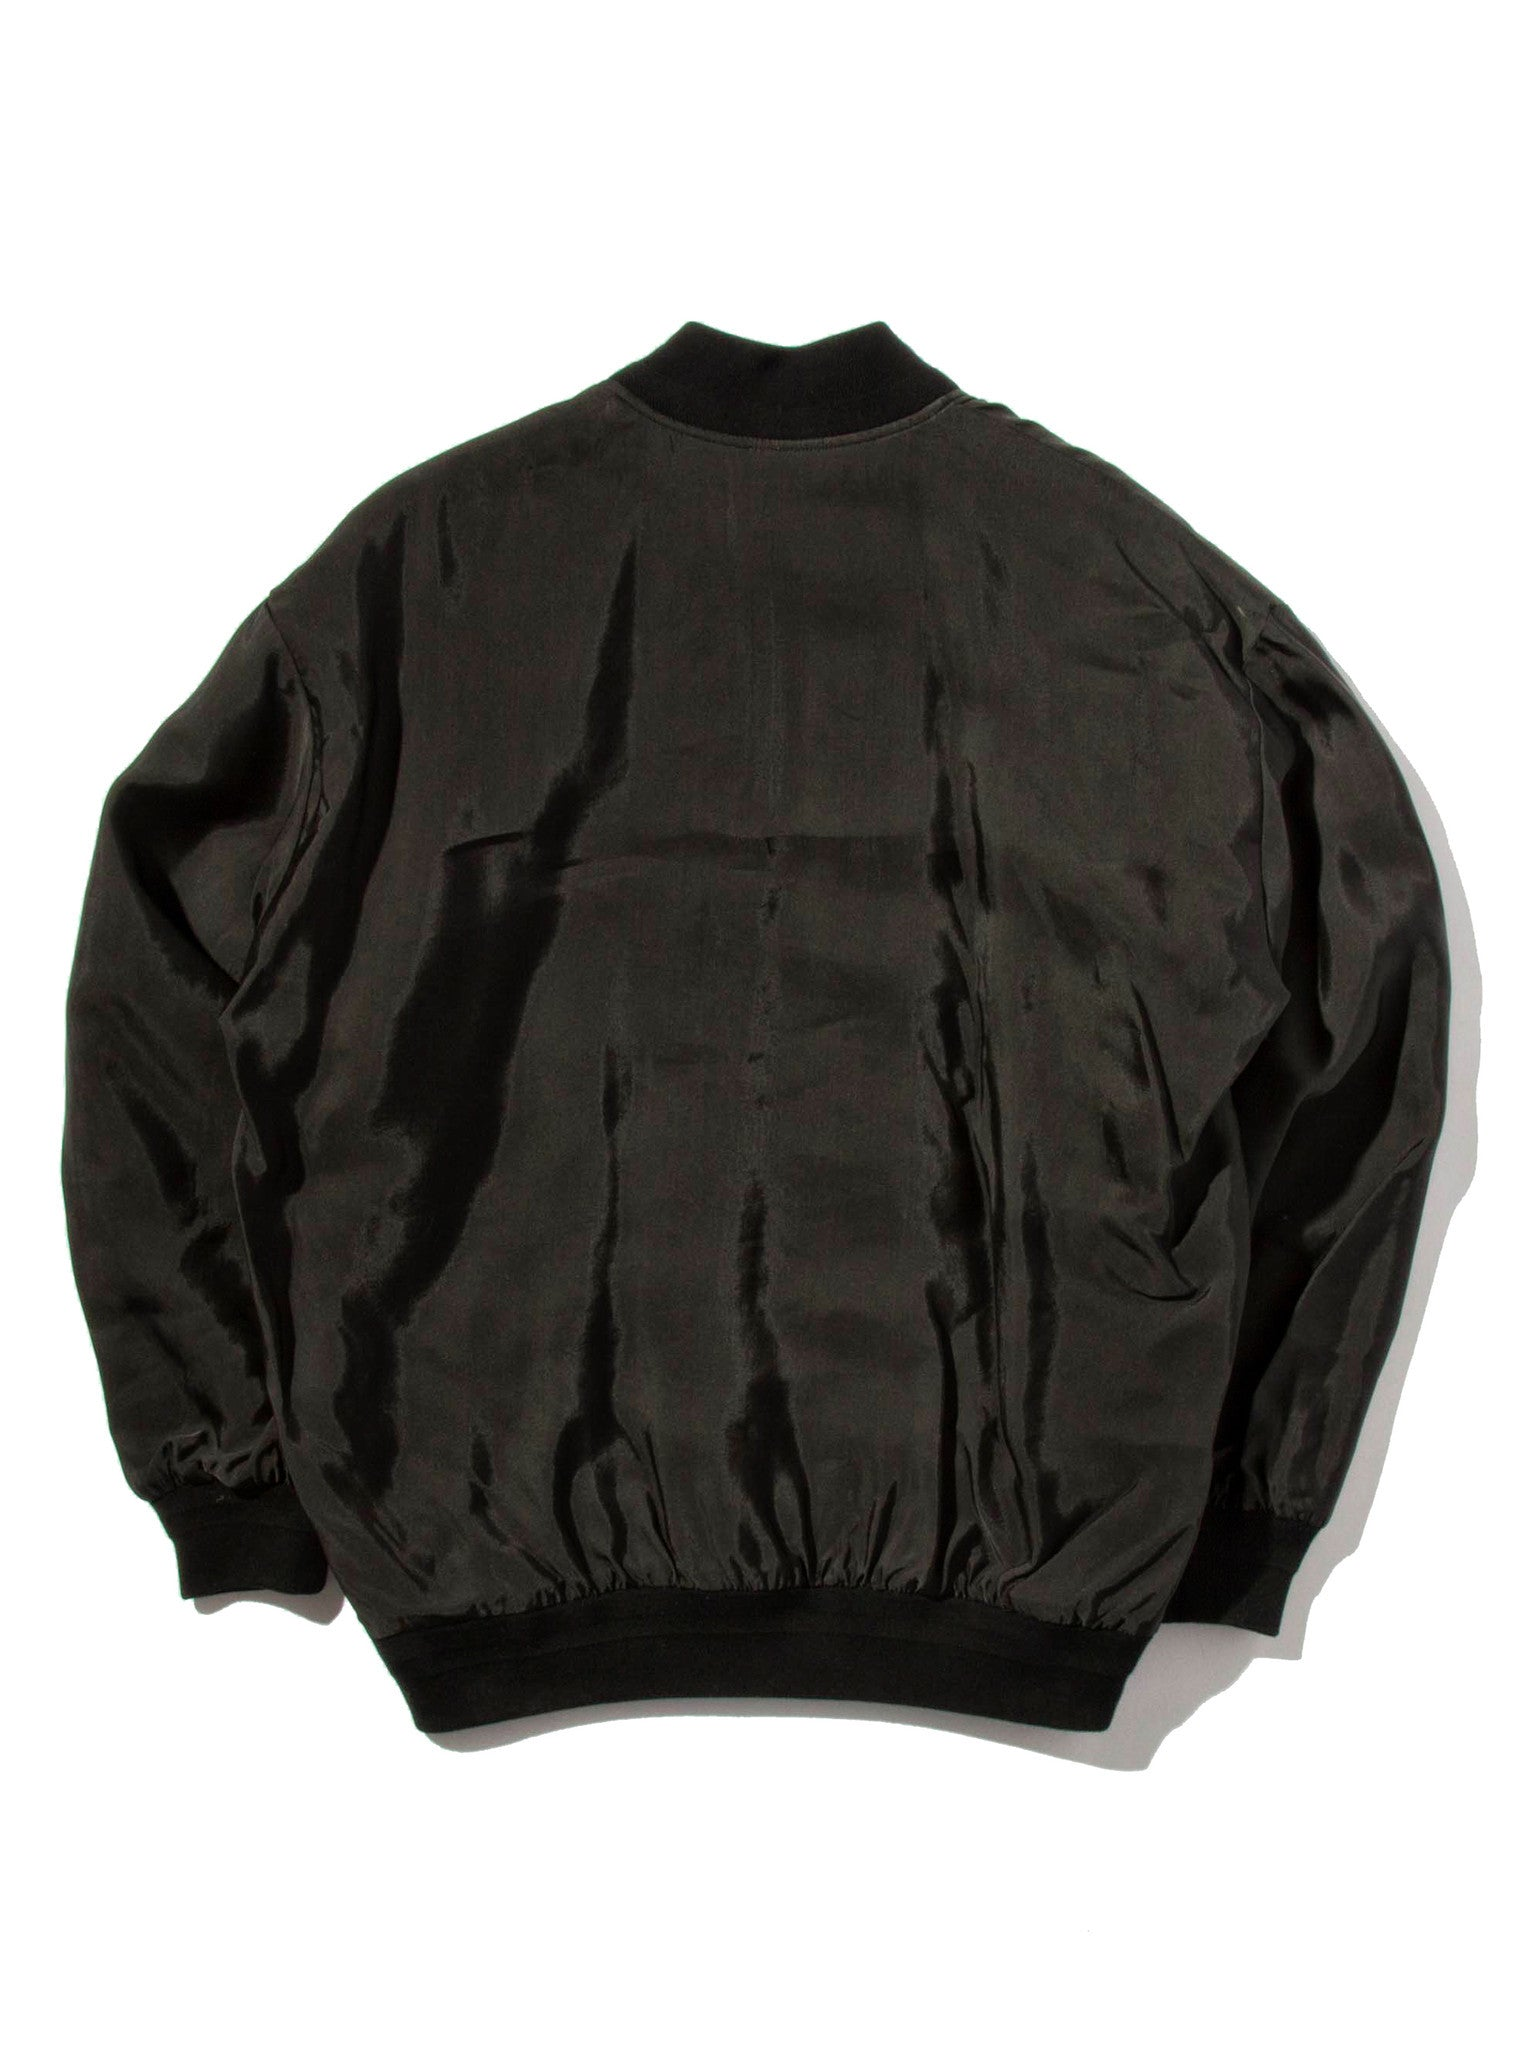 Jellyfish/Black Pisces Reversible Jacket (Jellyfish) 10